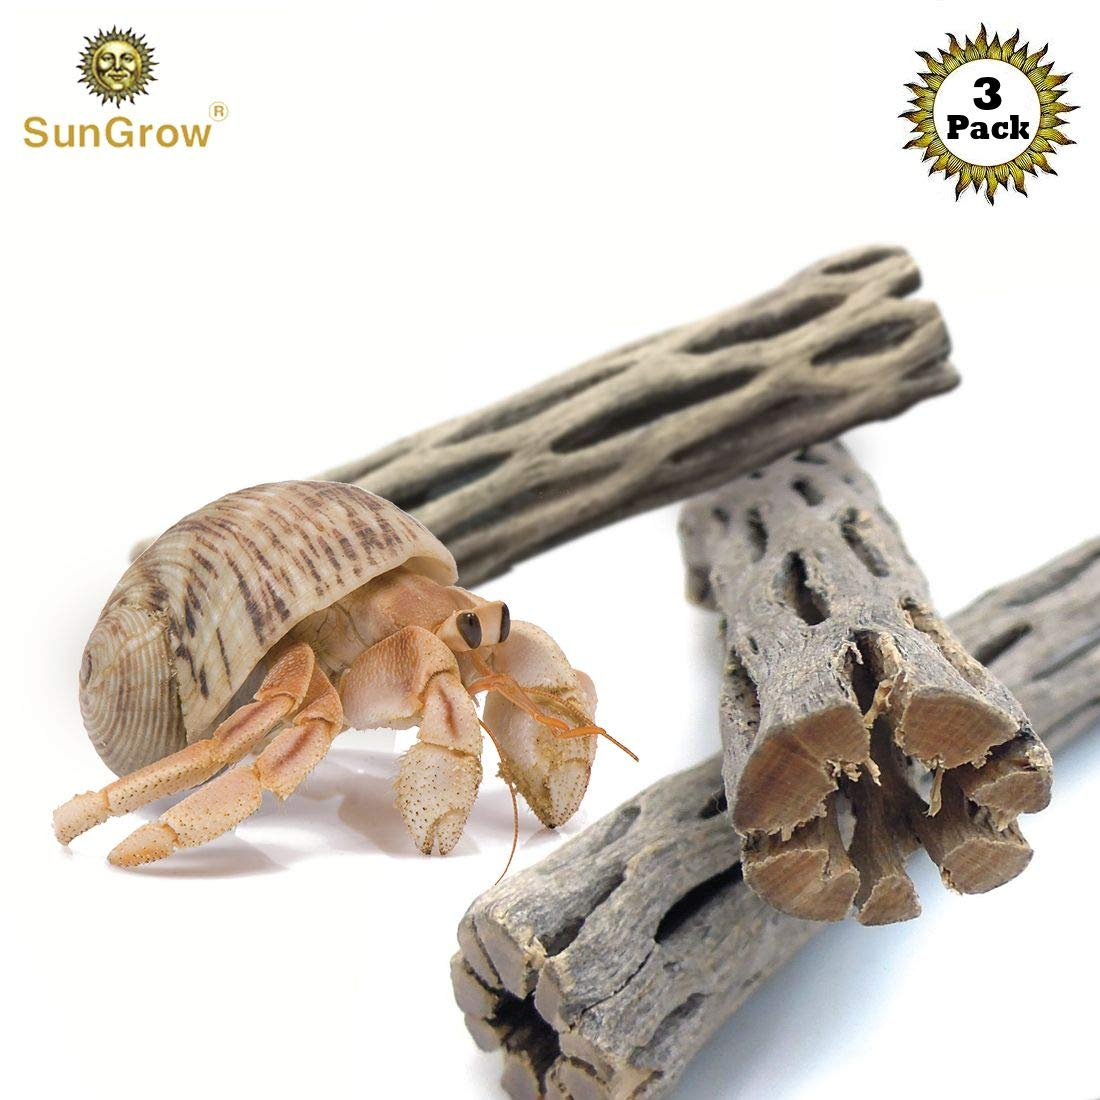 SunGrow 3 Hermit Crab Woods, Chew Toy and Source of Nutrition, Fun and Stimulating Activity for Little Climbers, Keep Hermies Busy & More Active, Long Dried Aquarium Décor Adds Raw Beauty by SunGrow